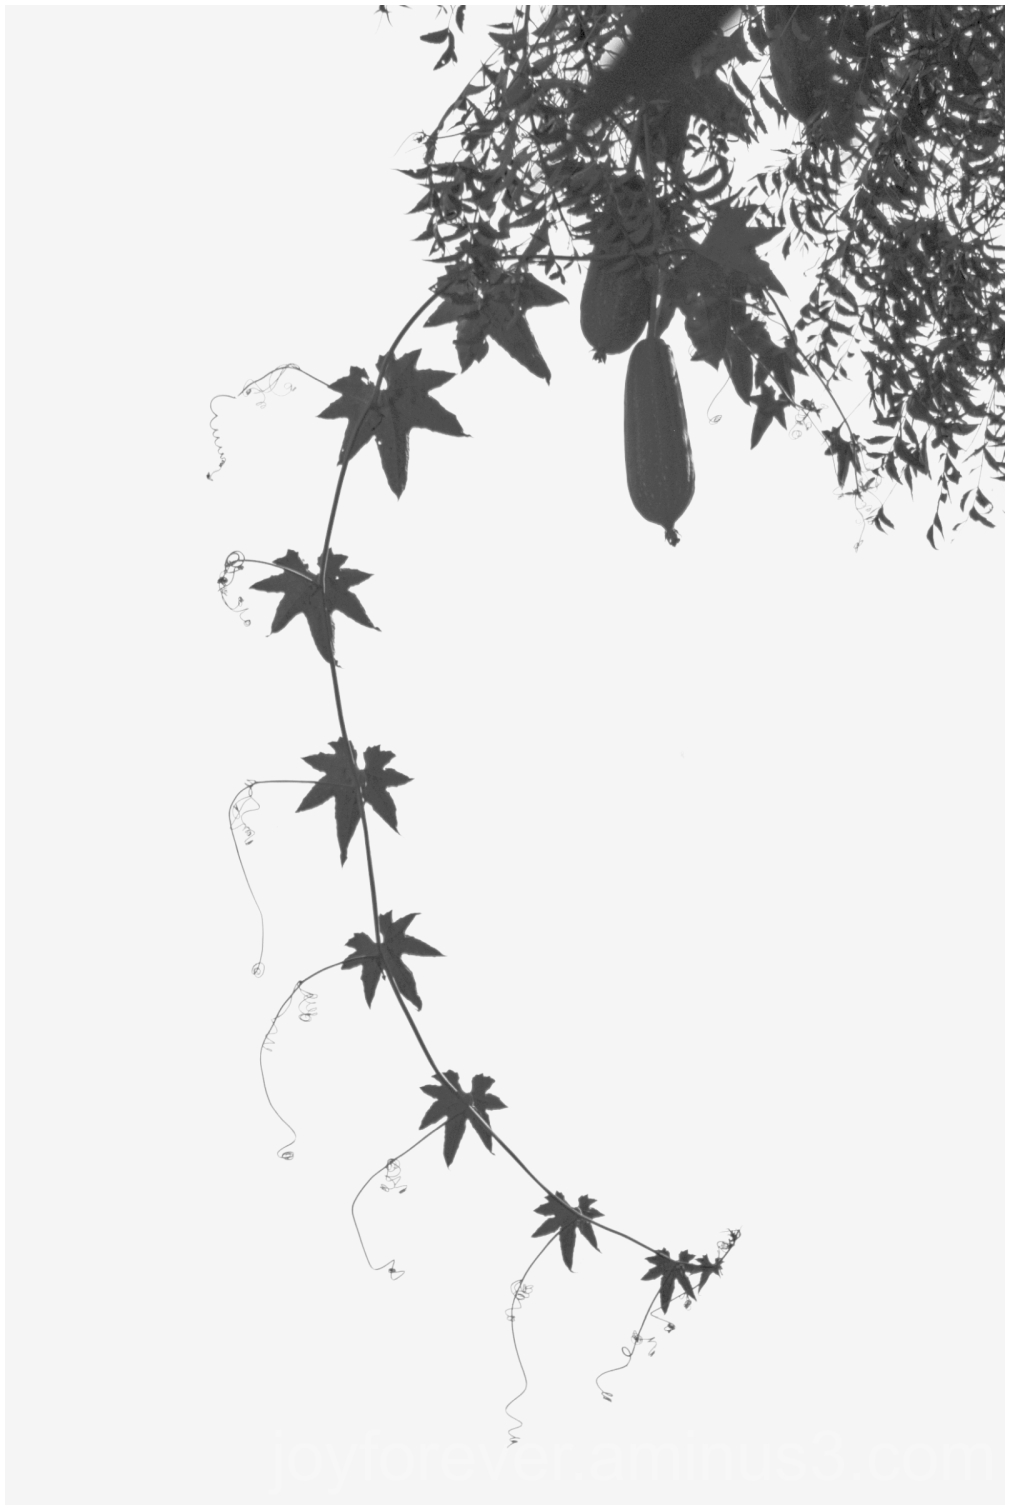 creeper vine silhouette leaves tendrils art design